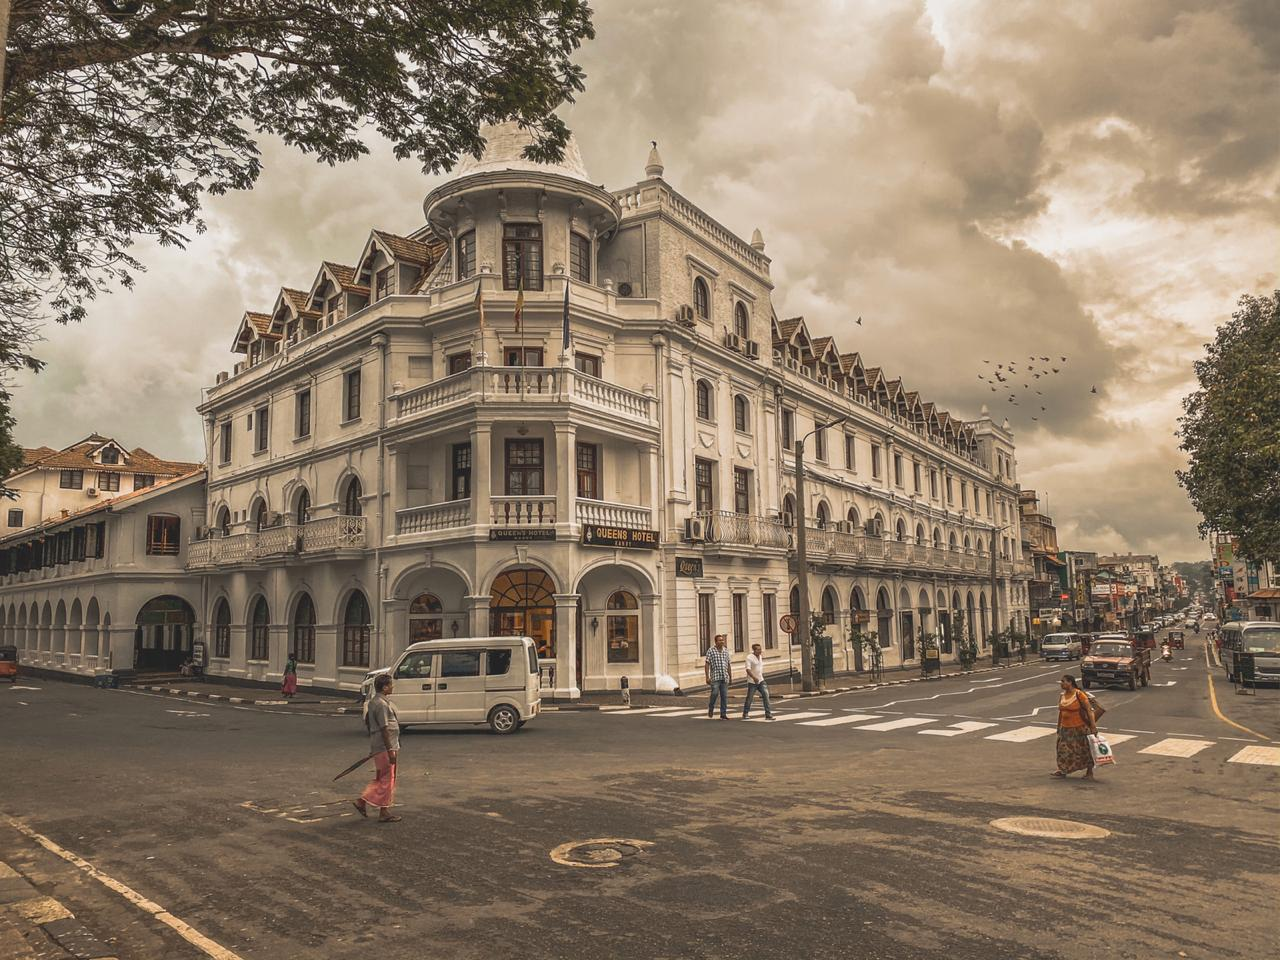 Kandy Colonial Building